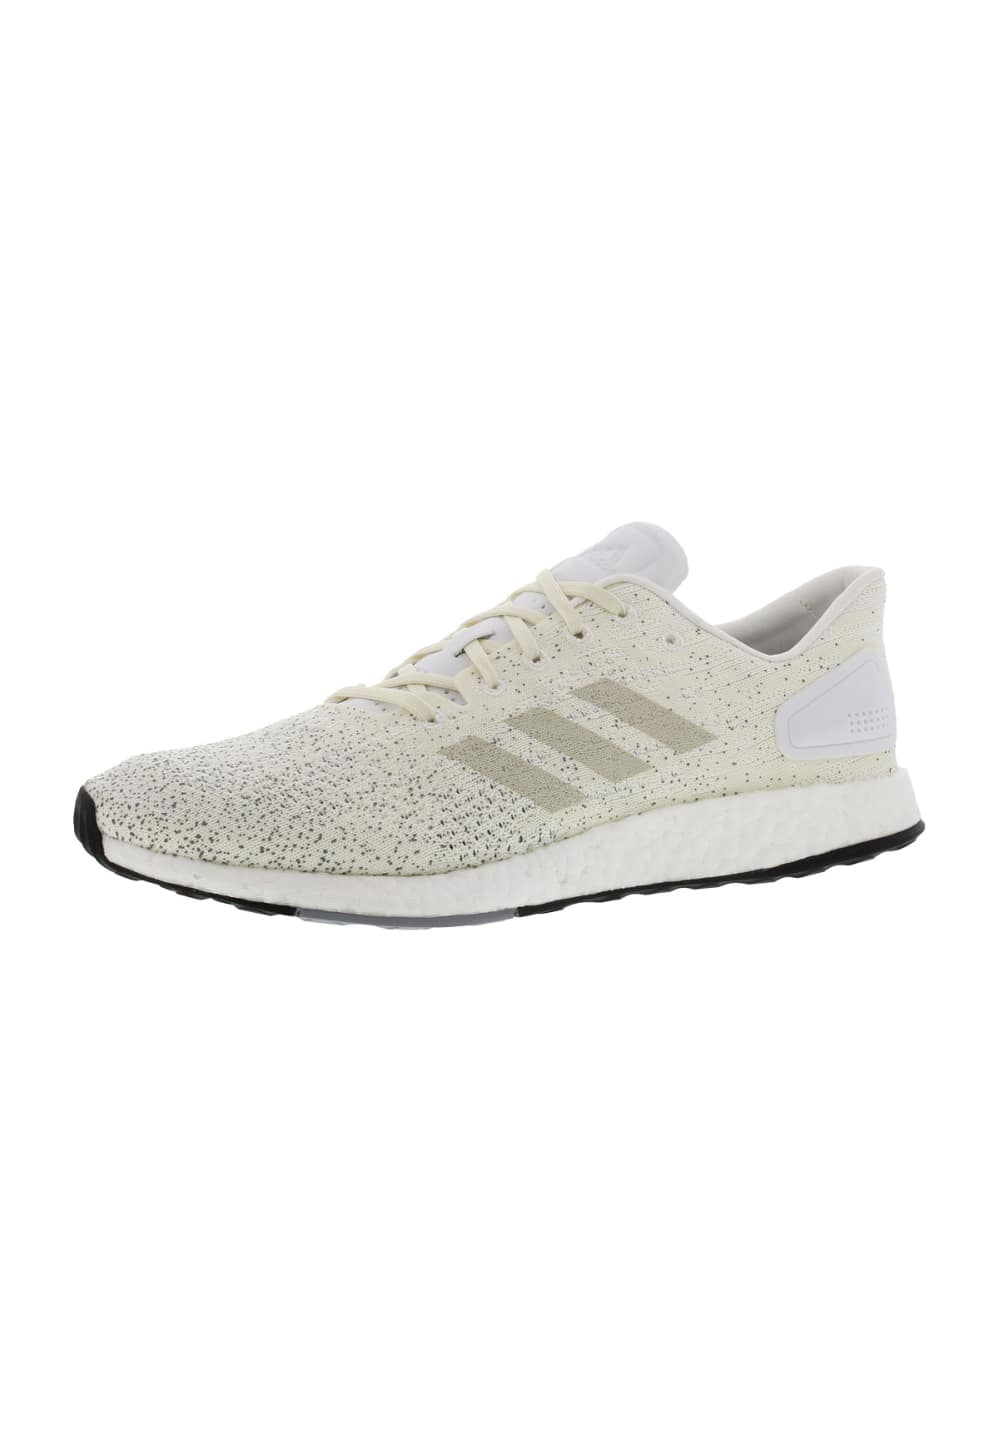 8429e3762 Next. -32%. adidas. Pureboost Dpr - Chaussures running pour Homme